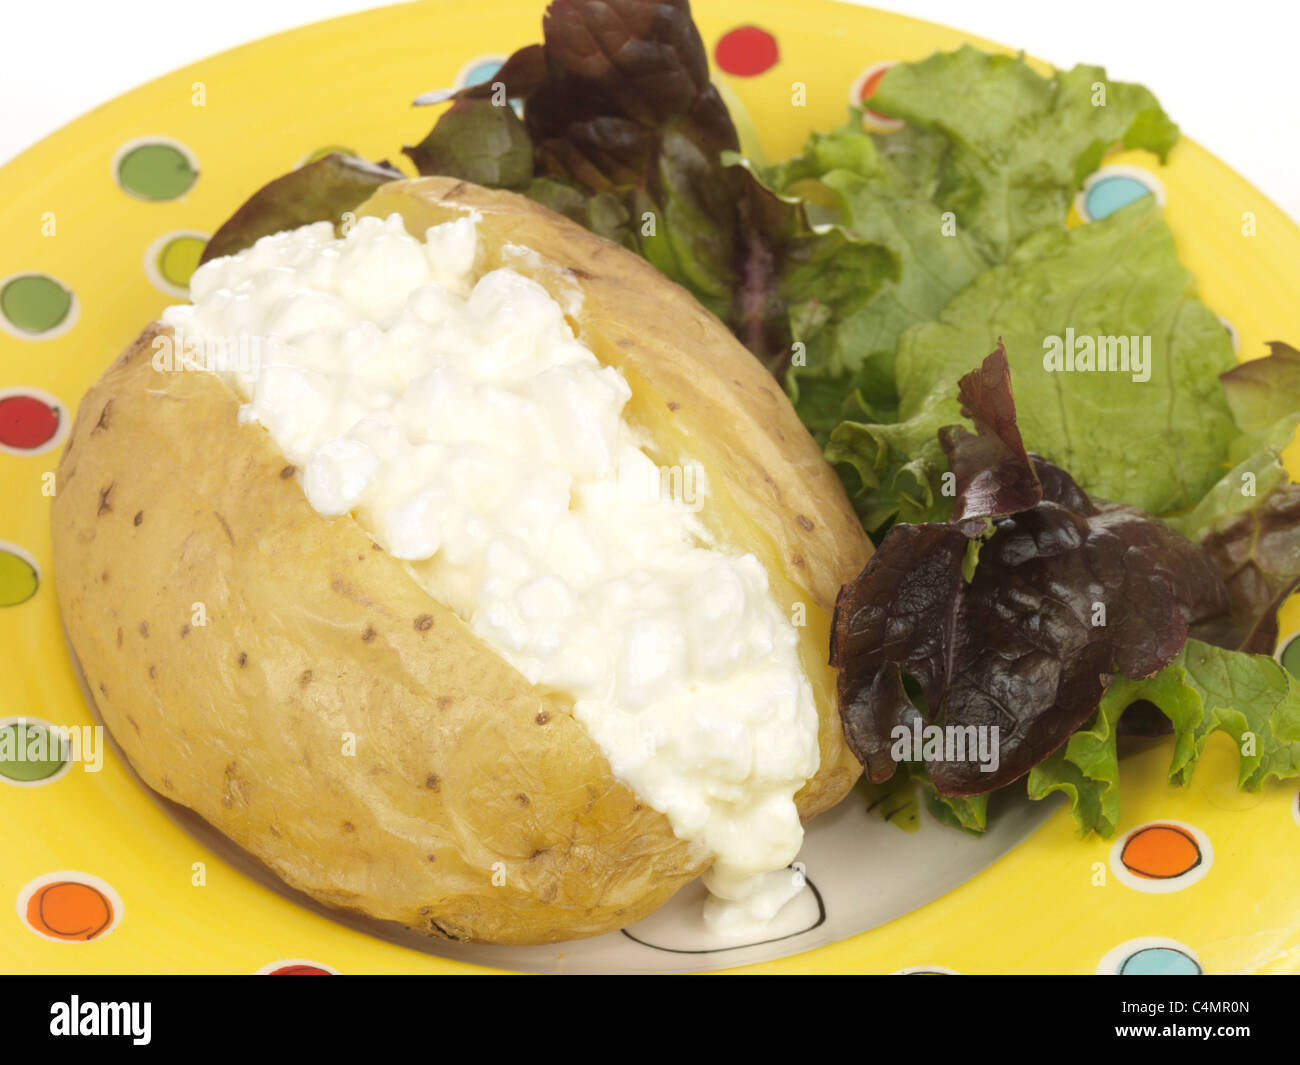 Awesome Jacket Potato With Cottage Cheese Stock Photo 37336453 Alamy Interior Design Ideas Gentotryabchikinfo